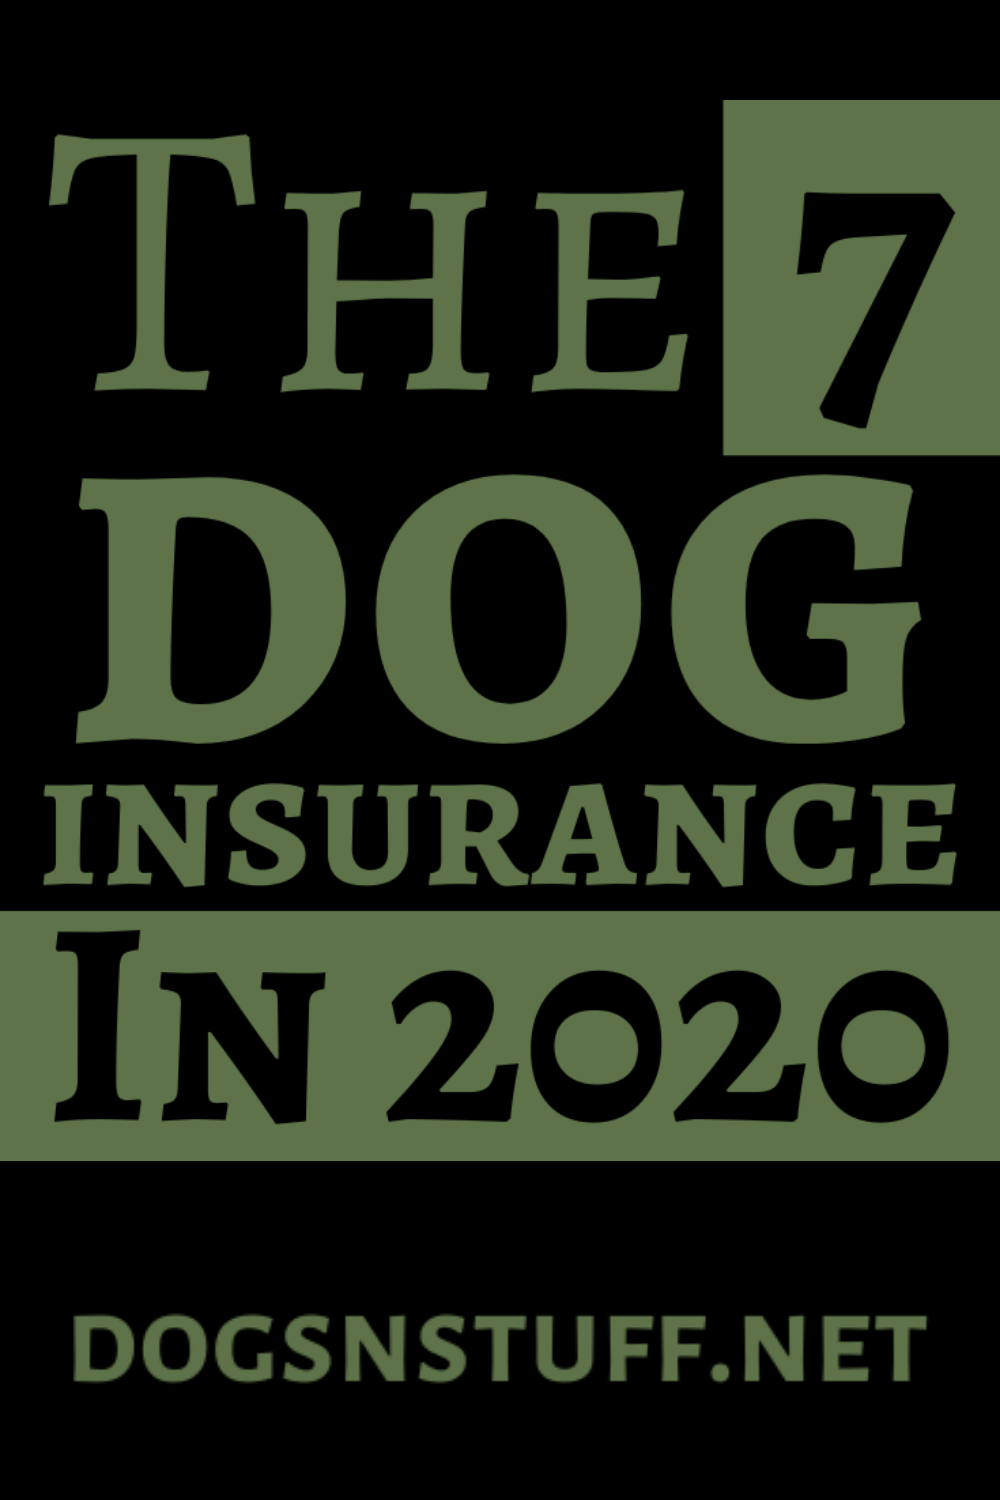 How to Find the Best Dog Insurance Dogs N' Stuff in 2020